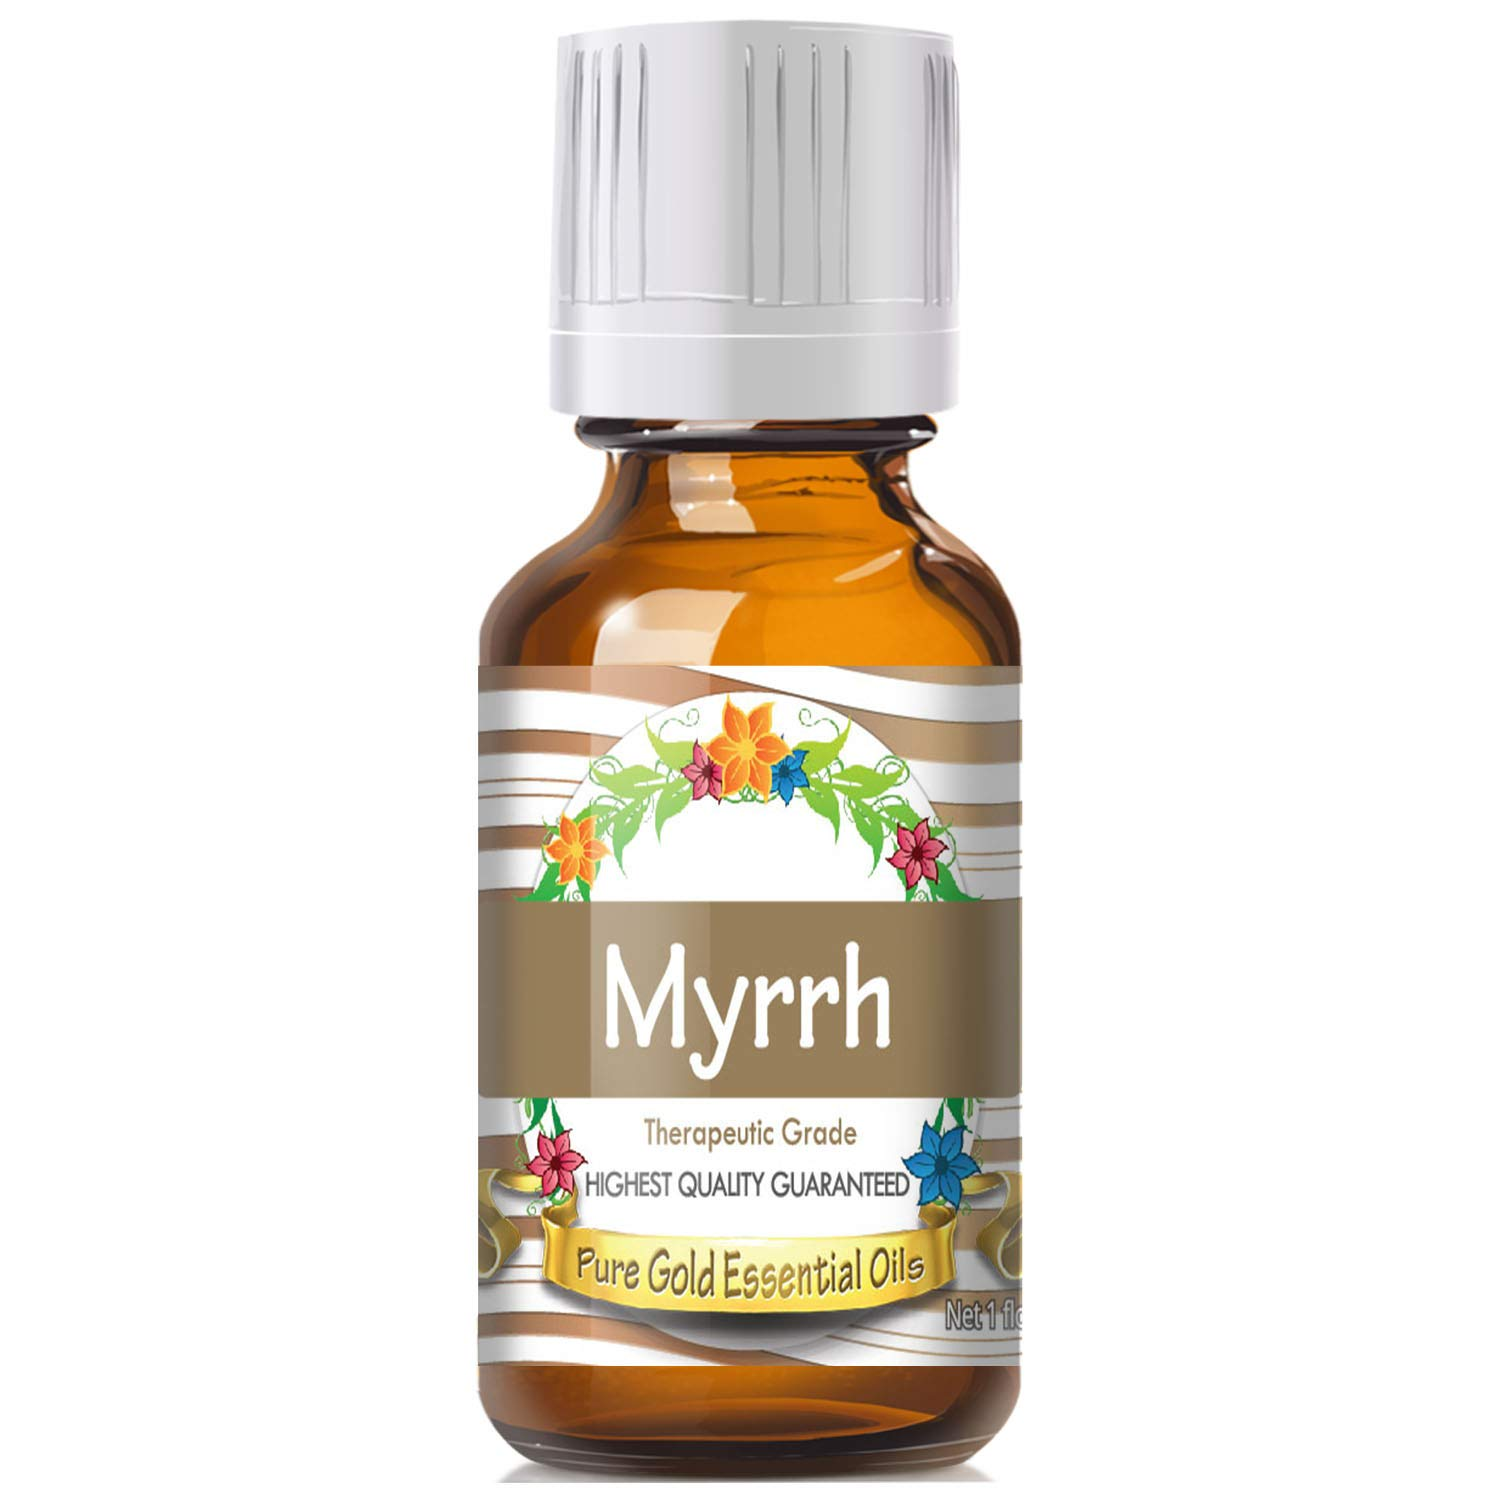 Myrrh Essential Oil (100% Pure, Natural, UNDILUTED) 30ml - Best Therapeutic Grade - Perfect for Your Aromatherapy Diffuser, Relaxation, More!